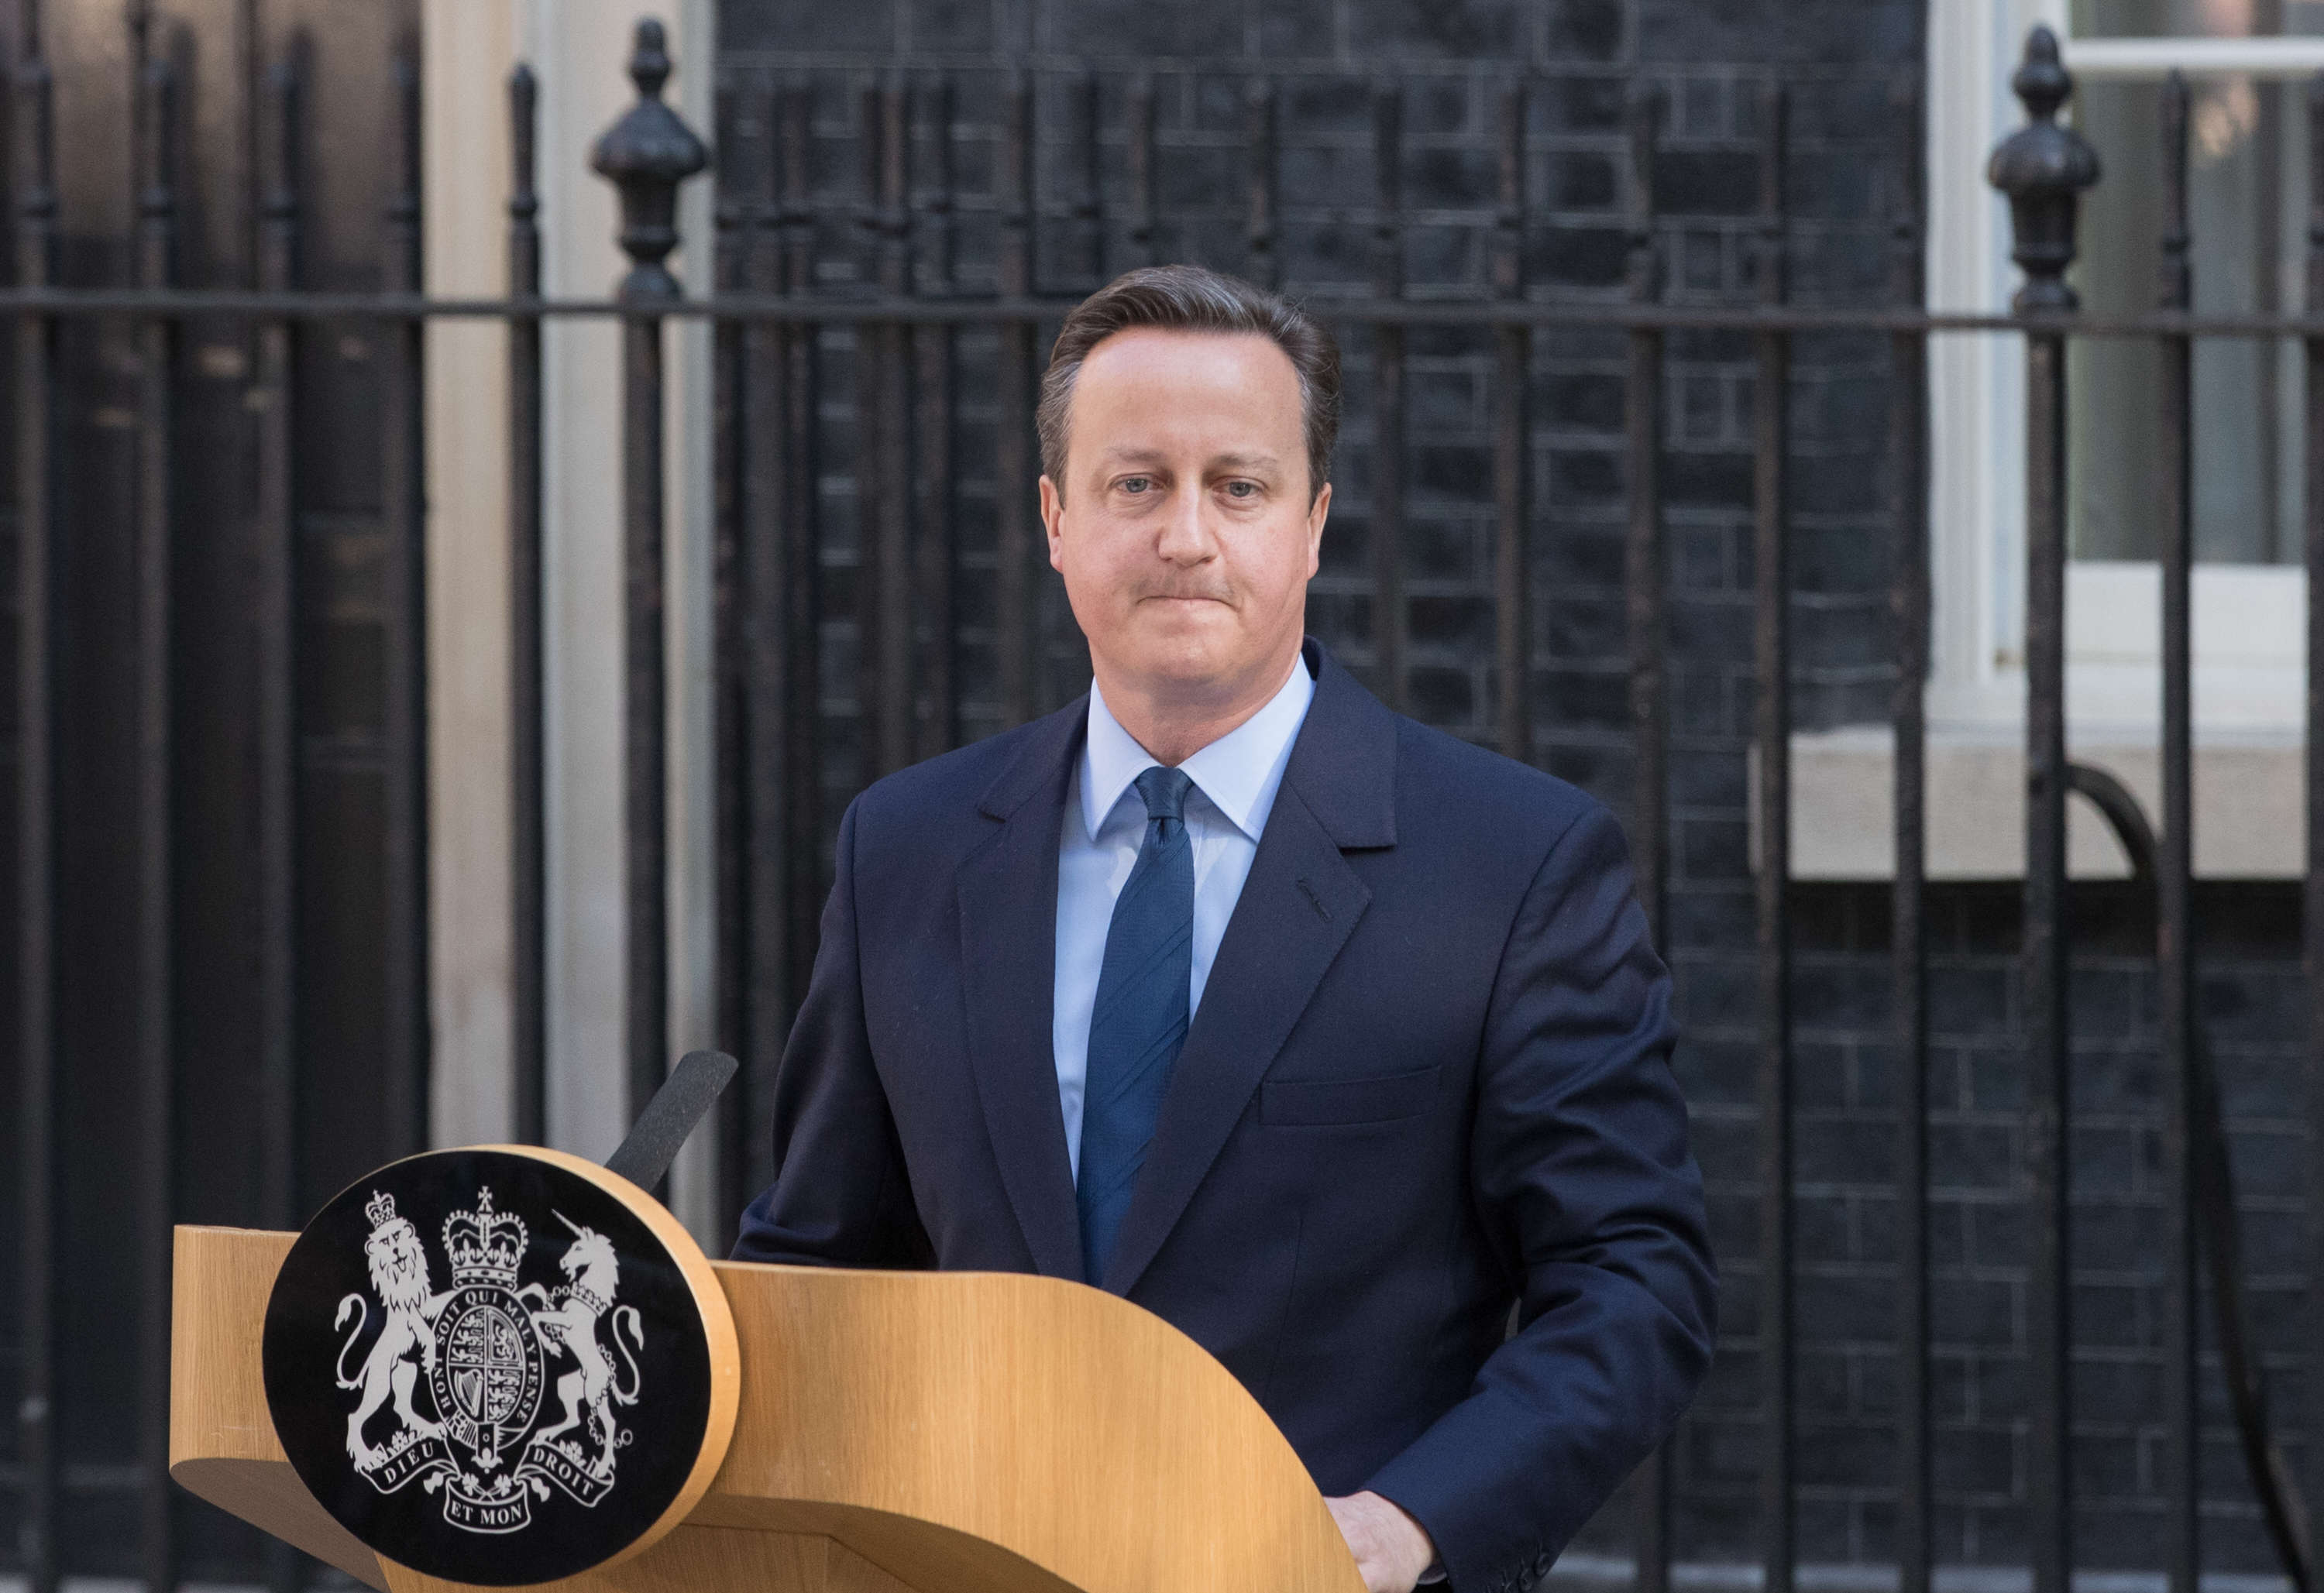 cameron1 Theres Already A Conspiracy Theory About Camerons Resignation